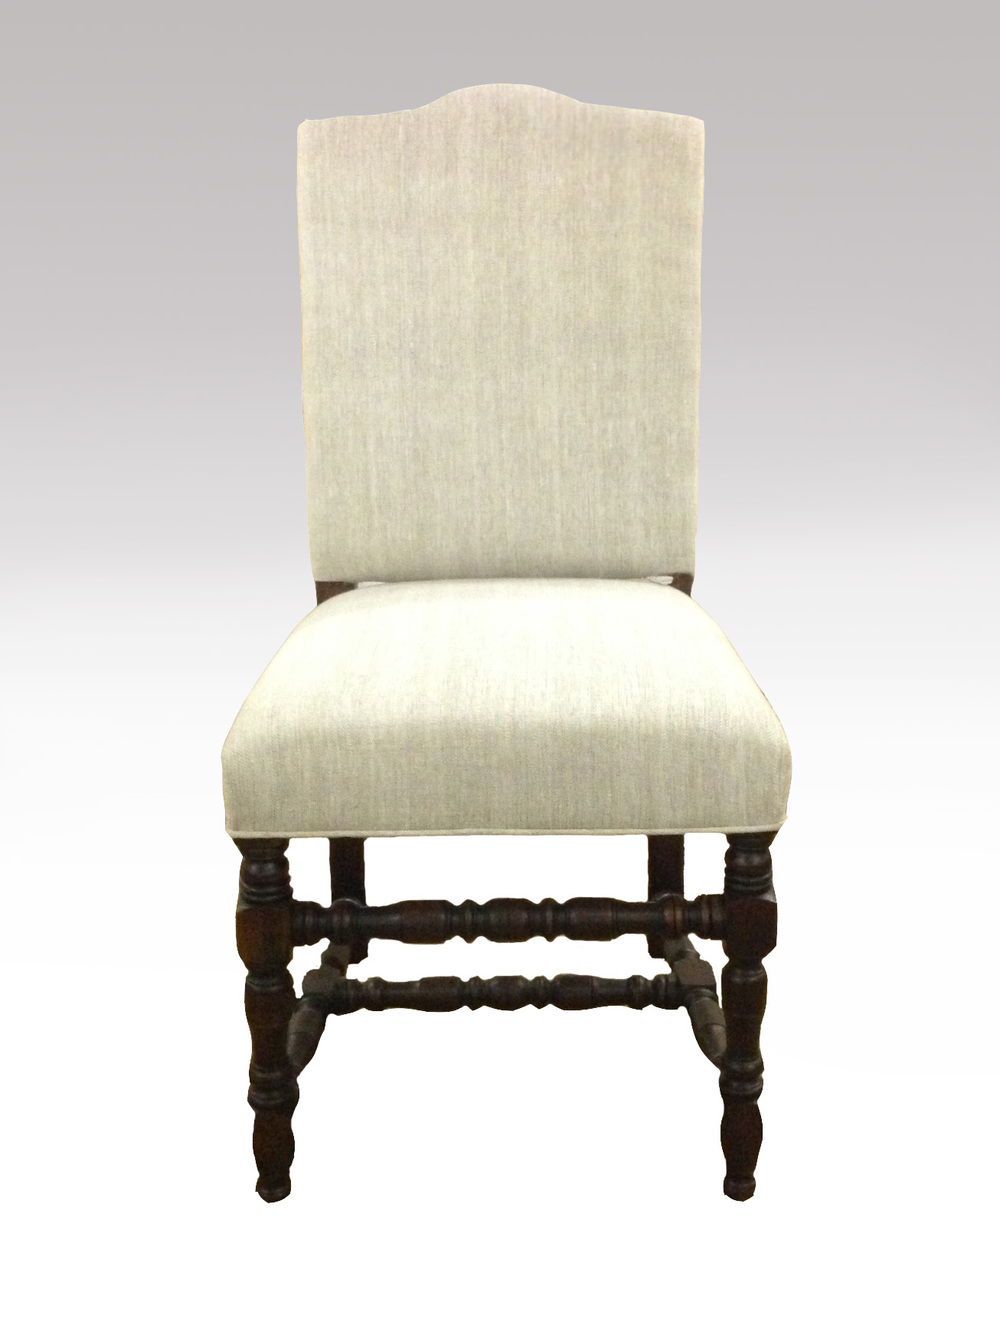 Dining chair 1.jpg